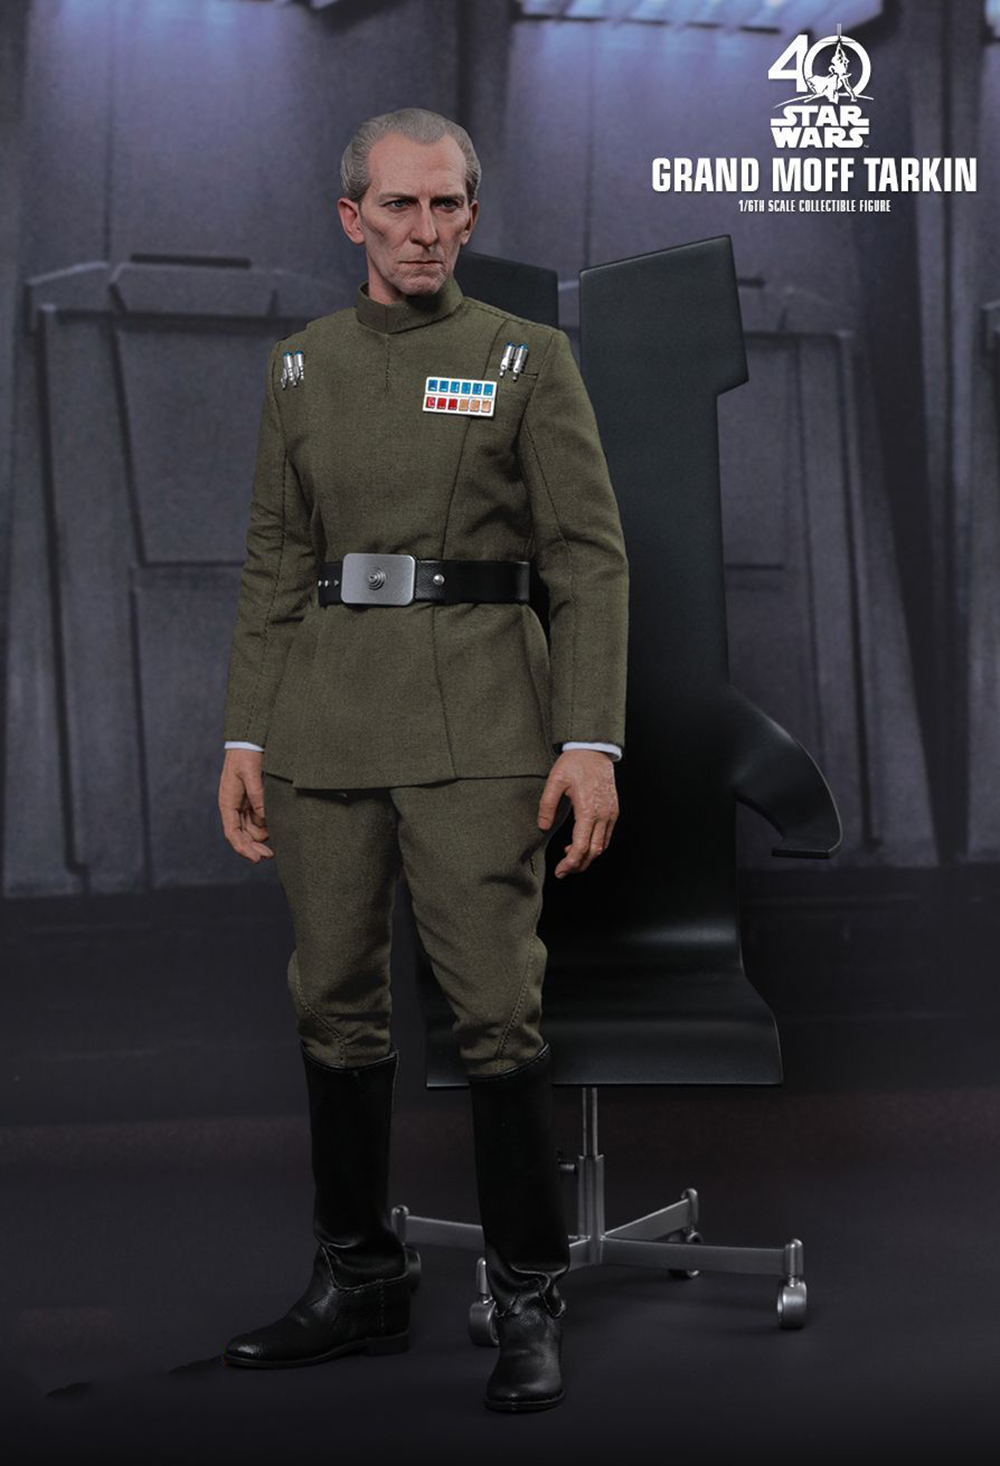 Full set Colletible 1/6 Scale Star Wars: Episode IV - A New Hope Grand Moff Tarkin Peter Cushing Figure Model Toys 3